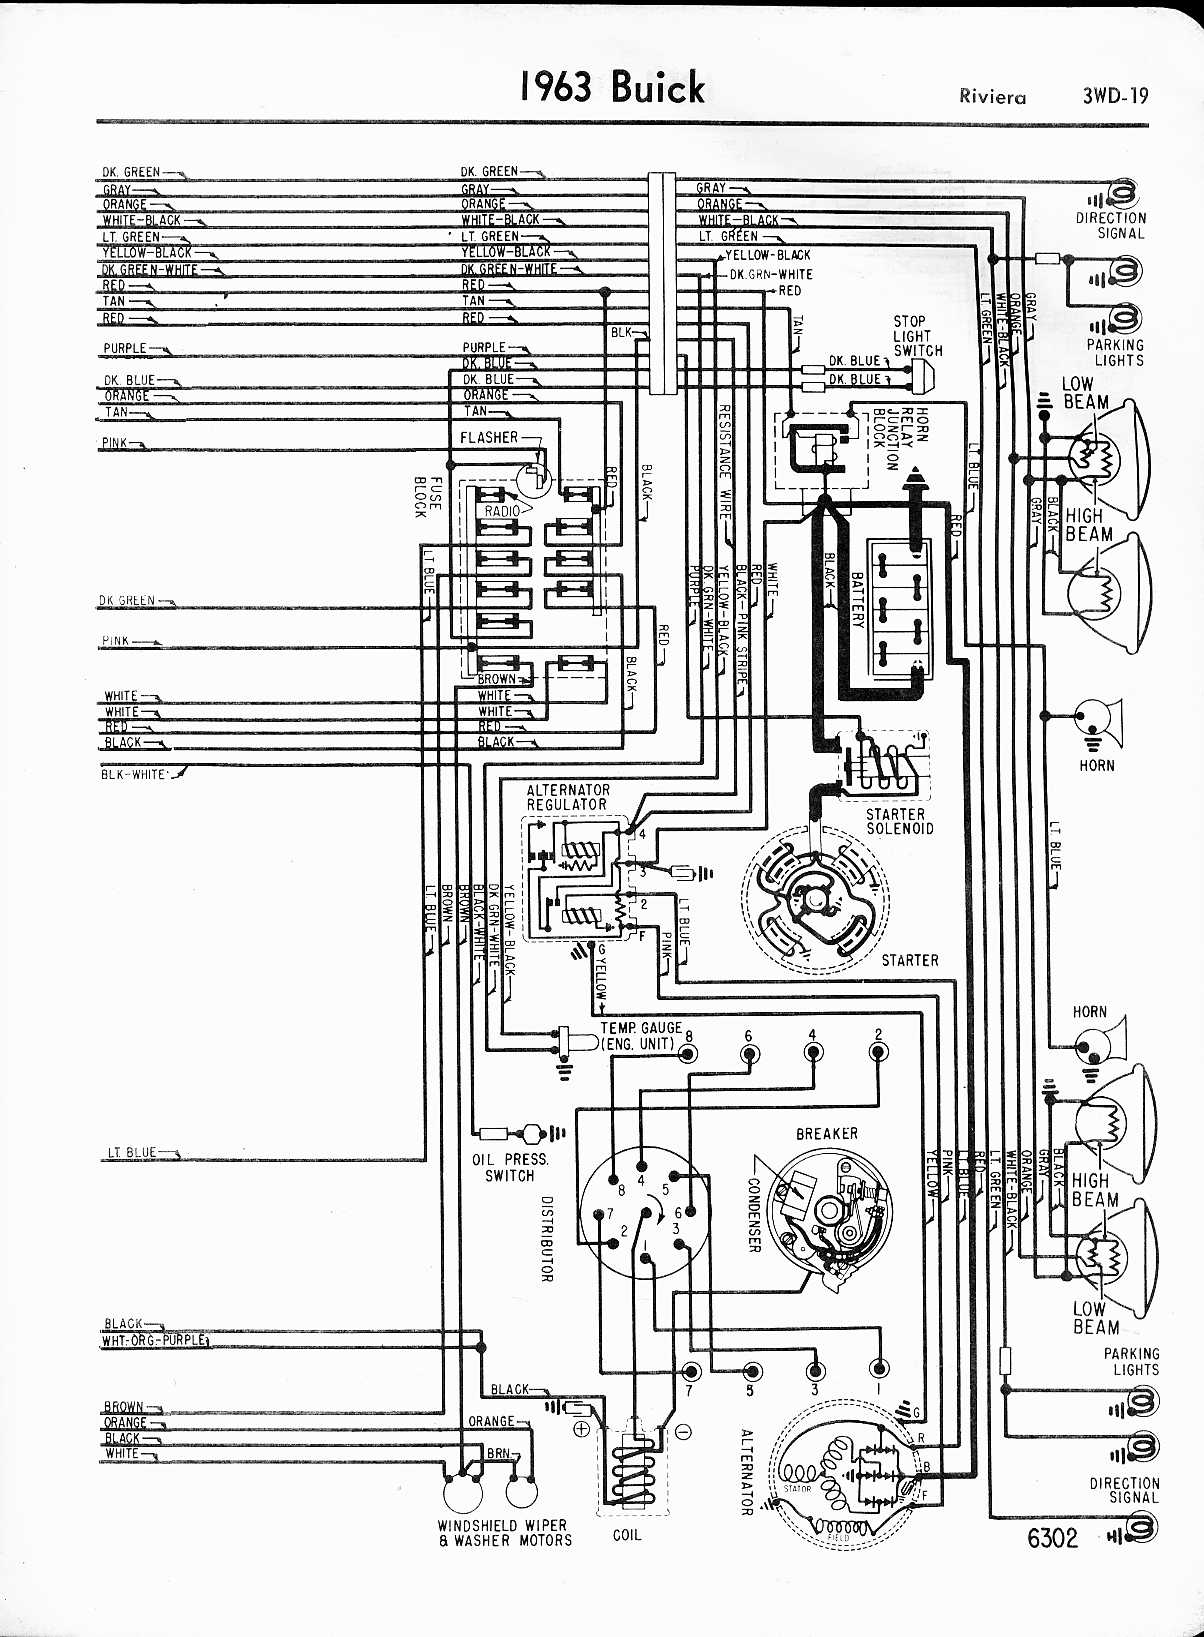 [DIAGRAM_38IS]  Buick Wiring Diagrams: 1957-1965 | 1966 Buick Special Wiring Diagram |  | The Old Car Manual Project